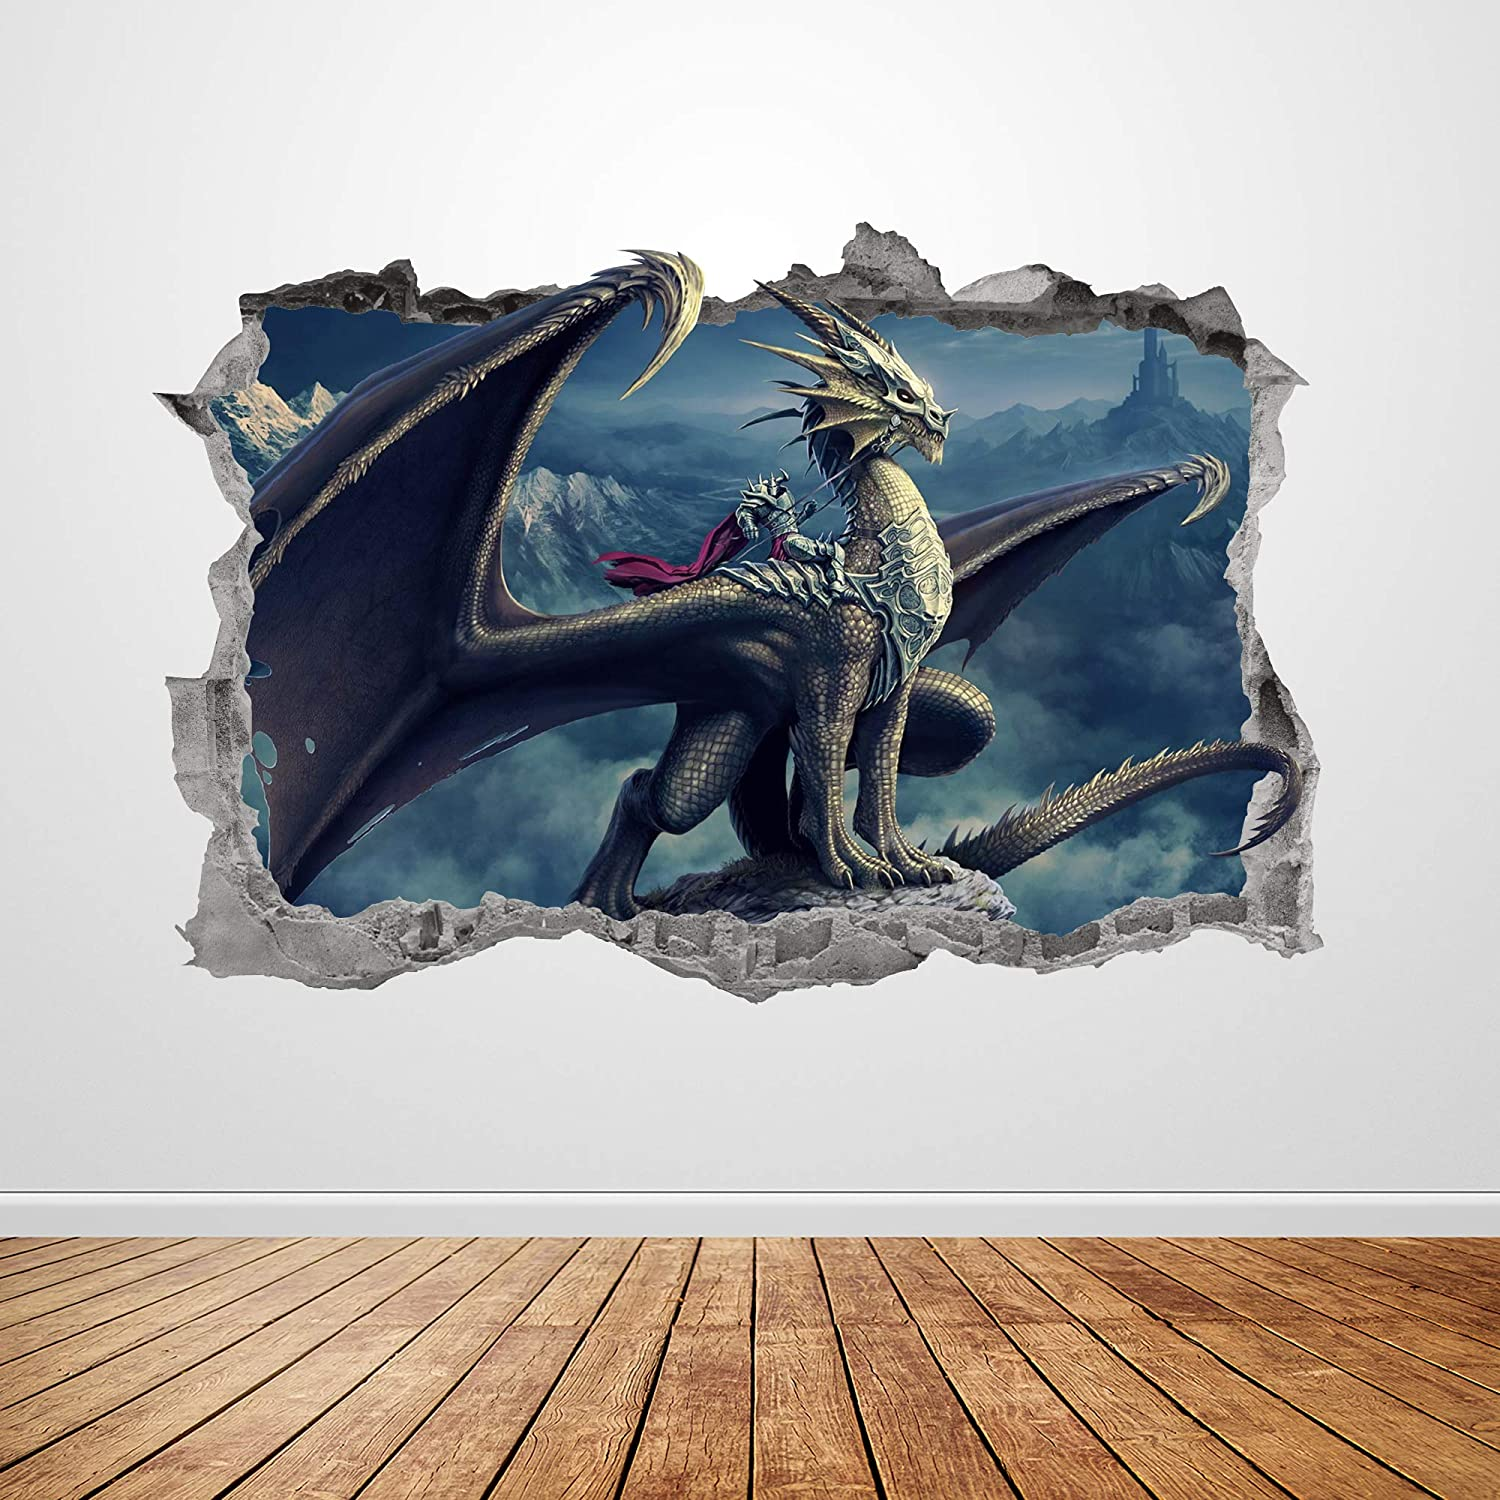 """Dragon Wall Decal Art Smashed 3D Graphic Mythical Creatures Wall Sticker Mural Poster Kids Room Decor Gift UP317 (50""""W x 34""""H inches)"""